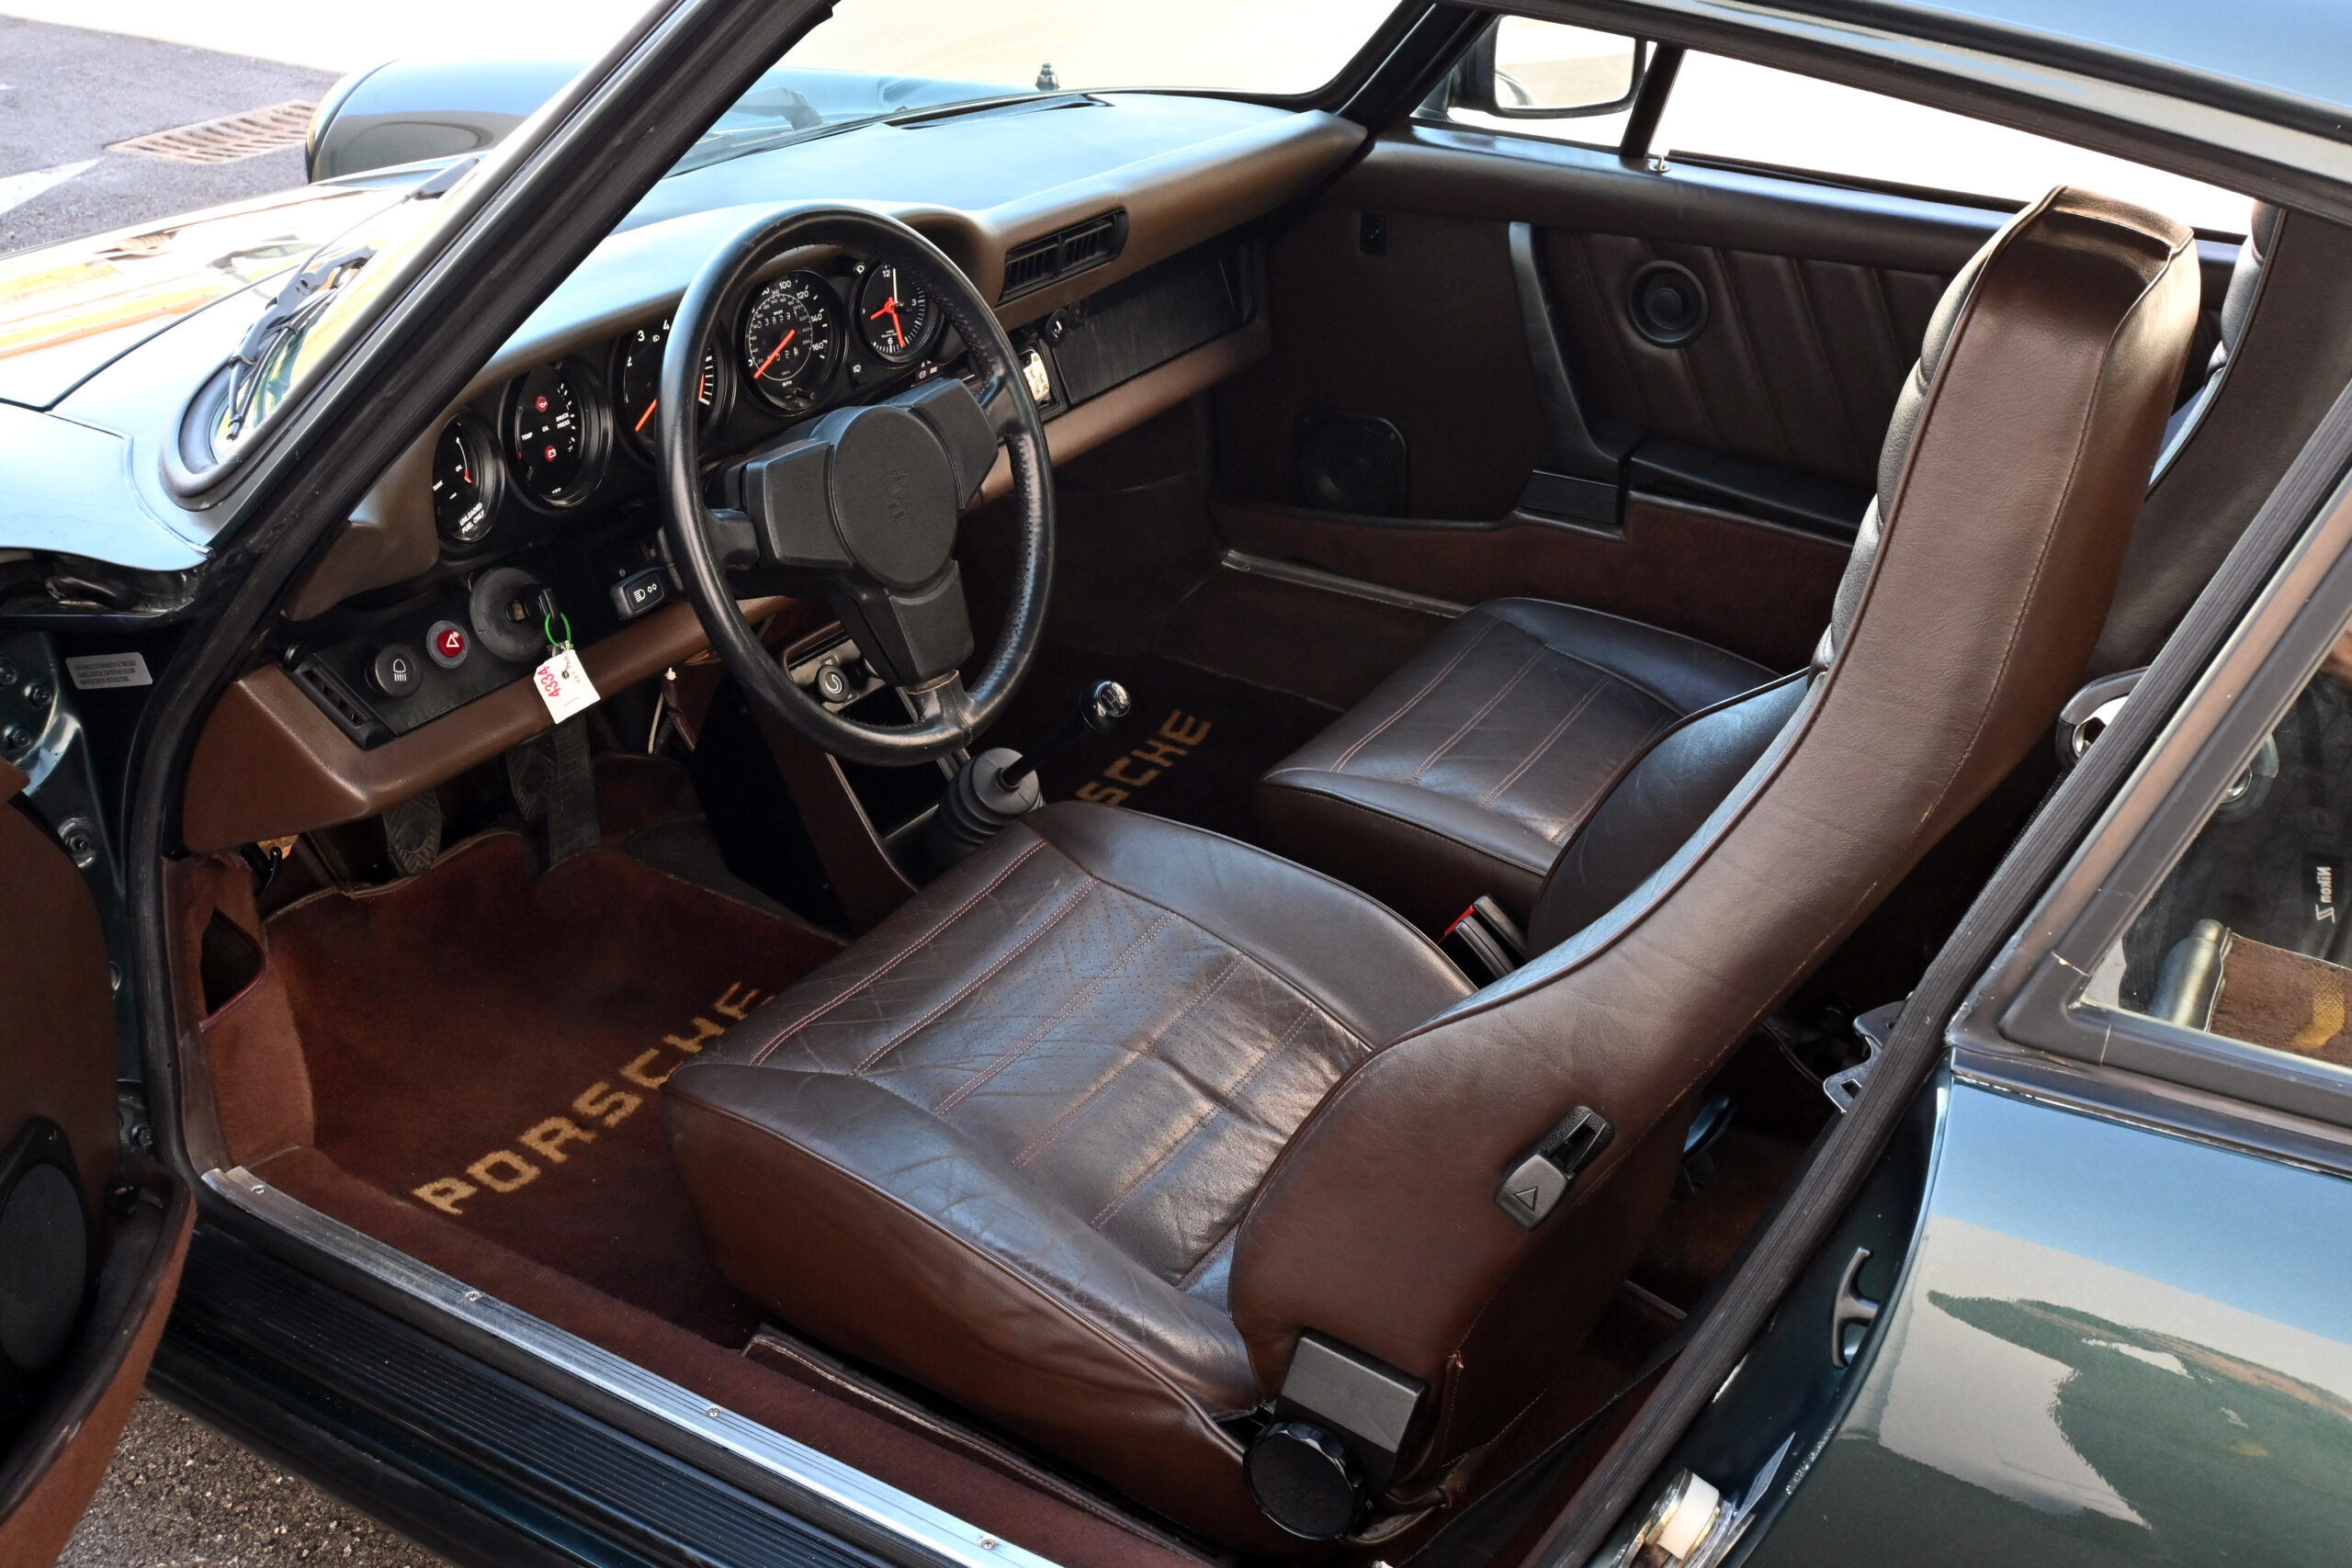 1983 Porsche 911 SC, One owner, 38K Actual and Documented miles,with stamps from Porsche dealer and receipts – Original 1982 Pirelli Cinturato P7 tires and rare Moss Green mostly original paint